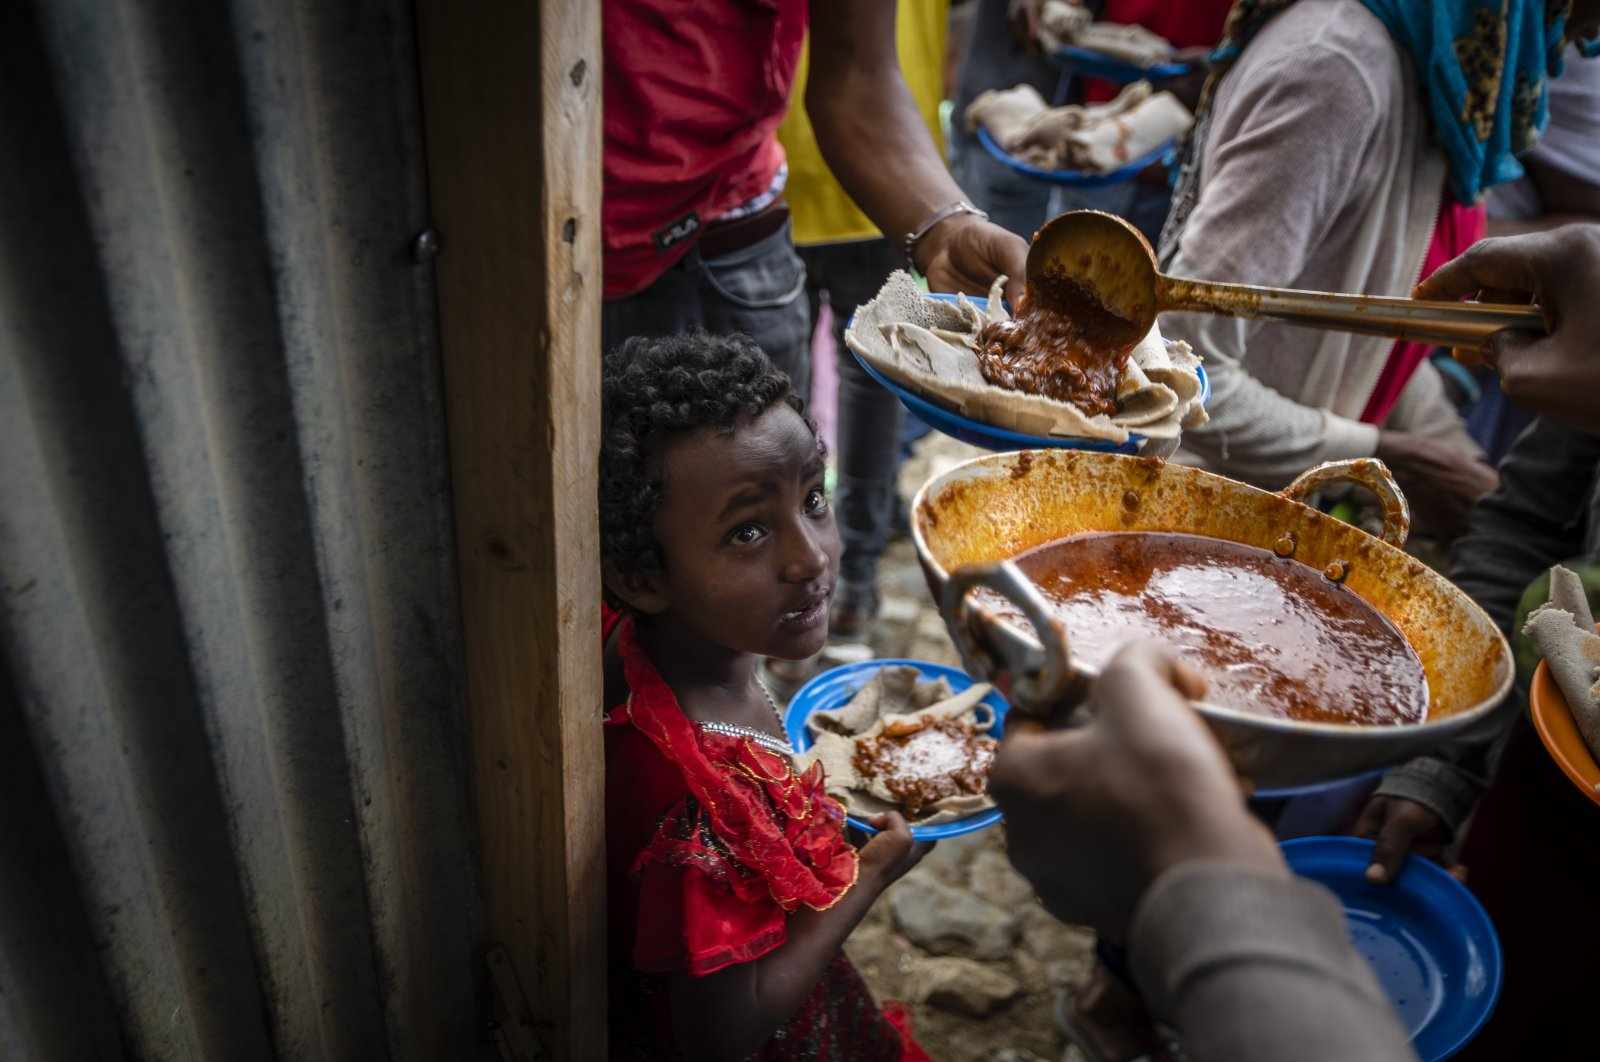 Elena, 7, (C) lines up with other displaced Tigrayans to receive food donated by local residents at a reception center for the internally displaced in Mekele, in the Tigray region of northern Ethiopia, May 9, 2021. (AP Photo)